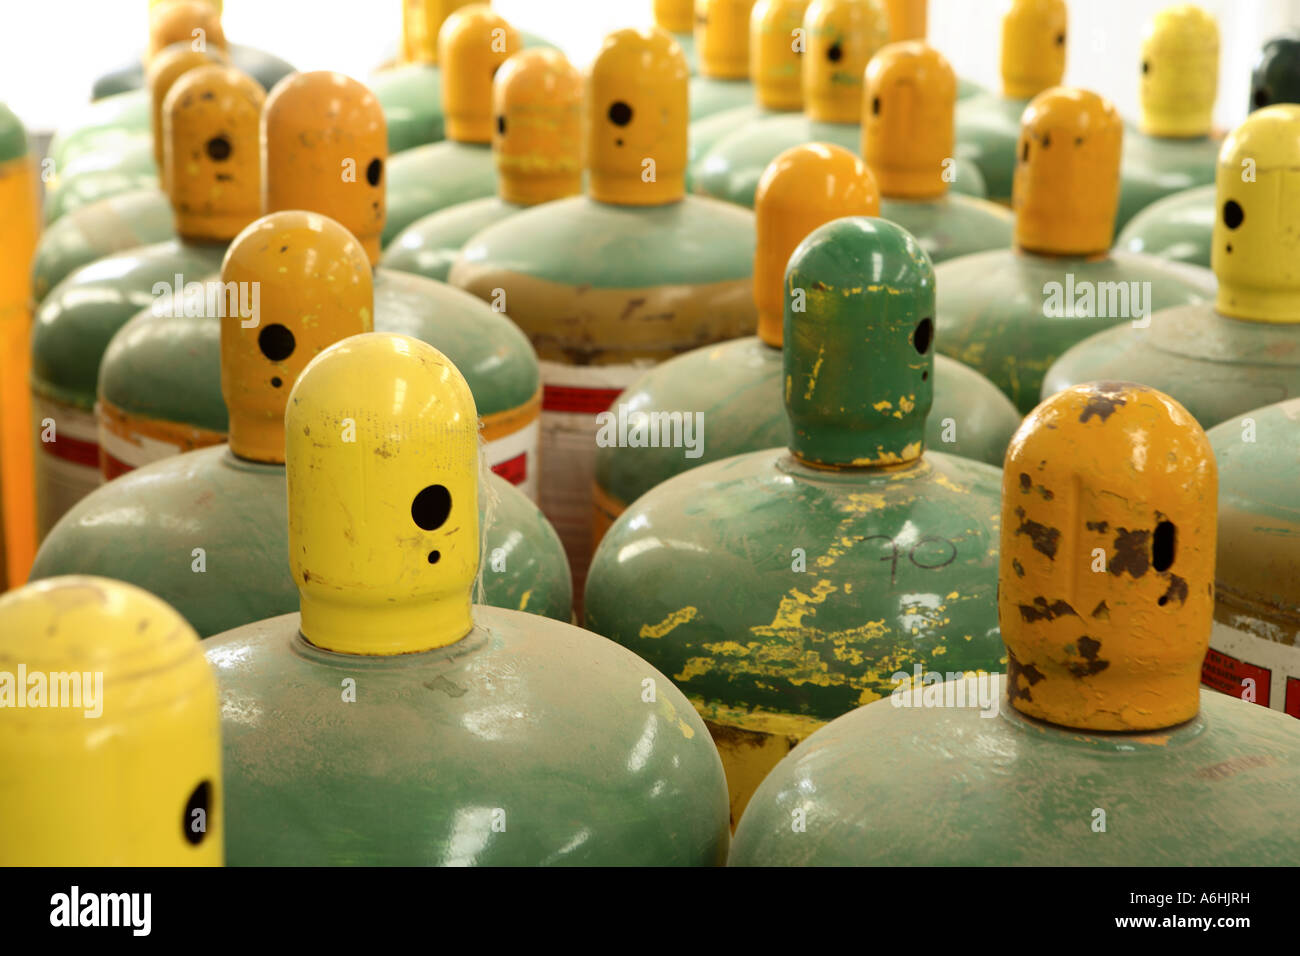 Canisters of toxic gases - Stock Image